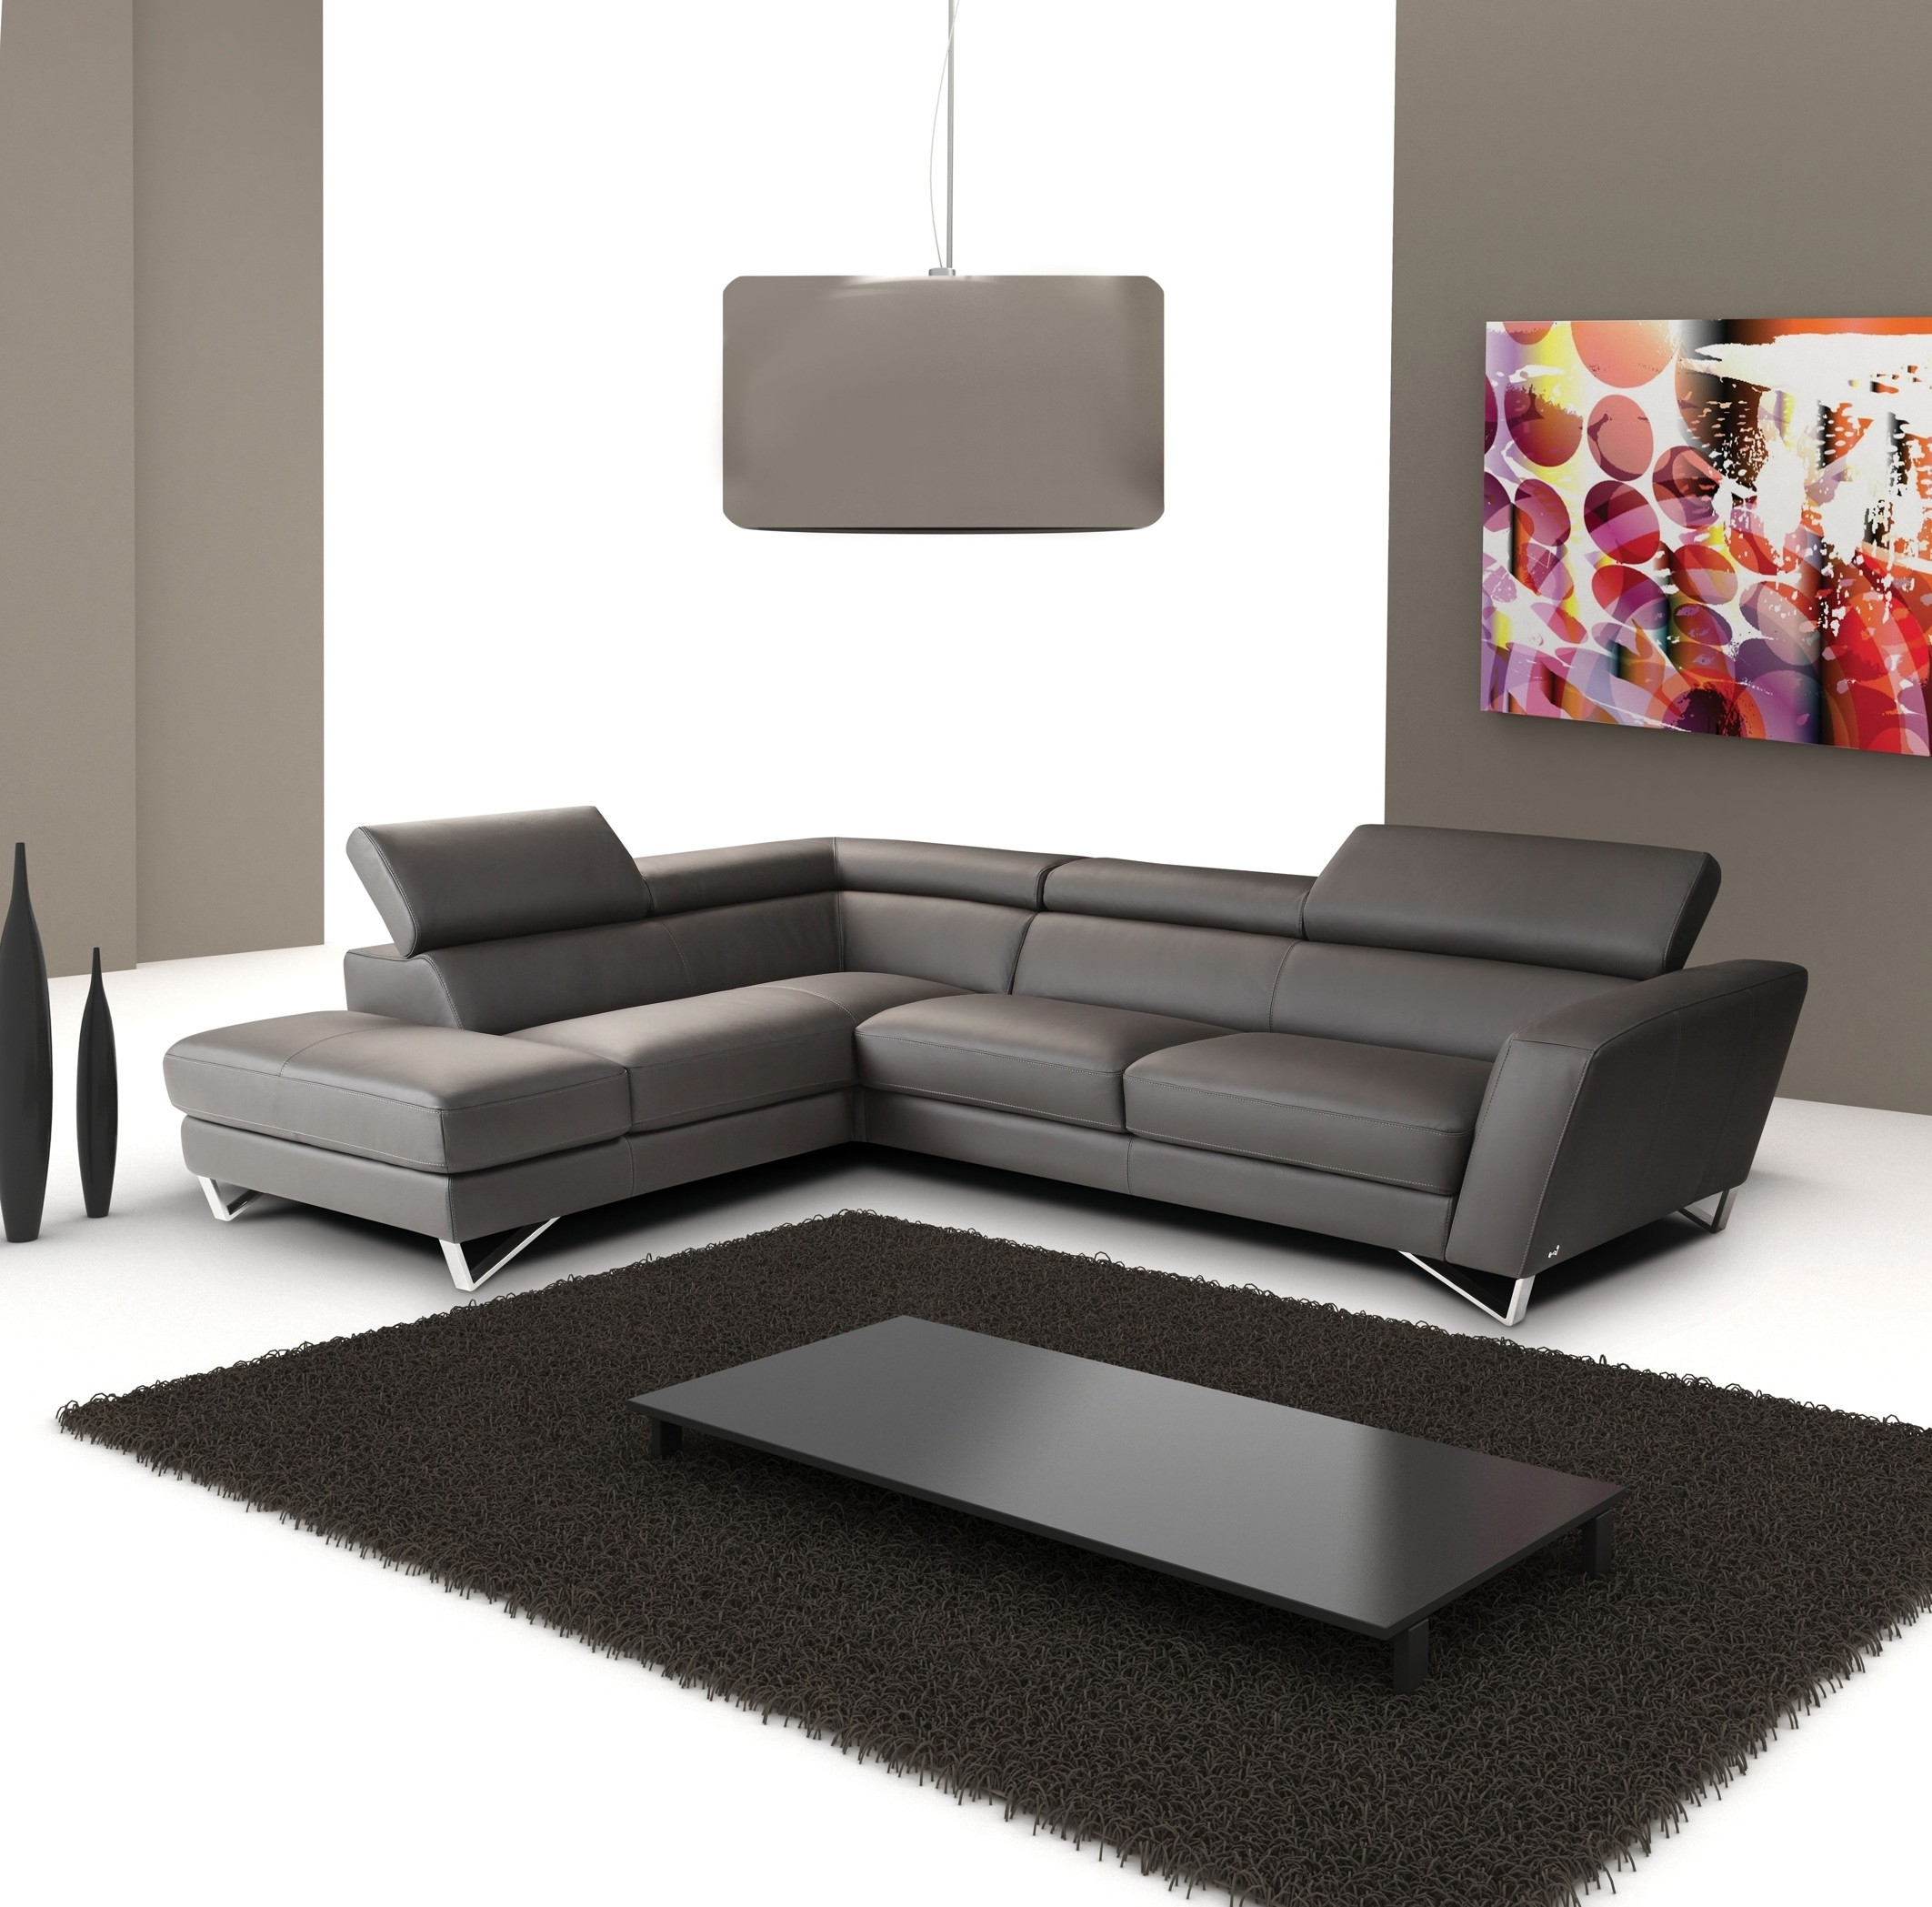 Sparta Italian Leather Modern Sectional Sofa Within Modern Sectional Sofas (View 4 of 10)